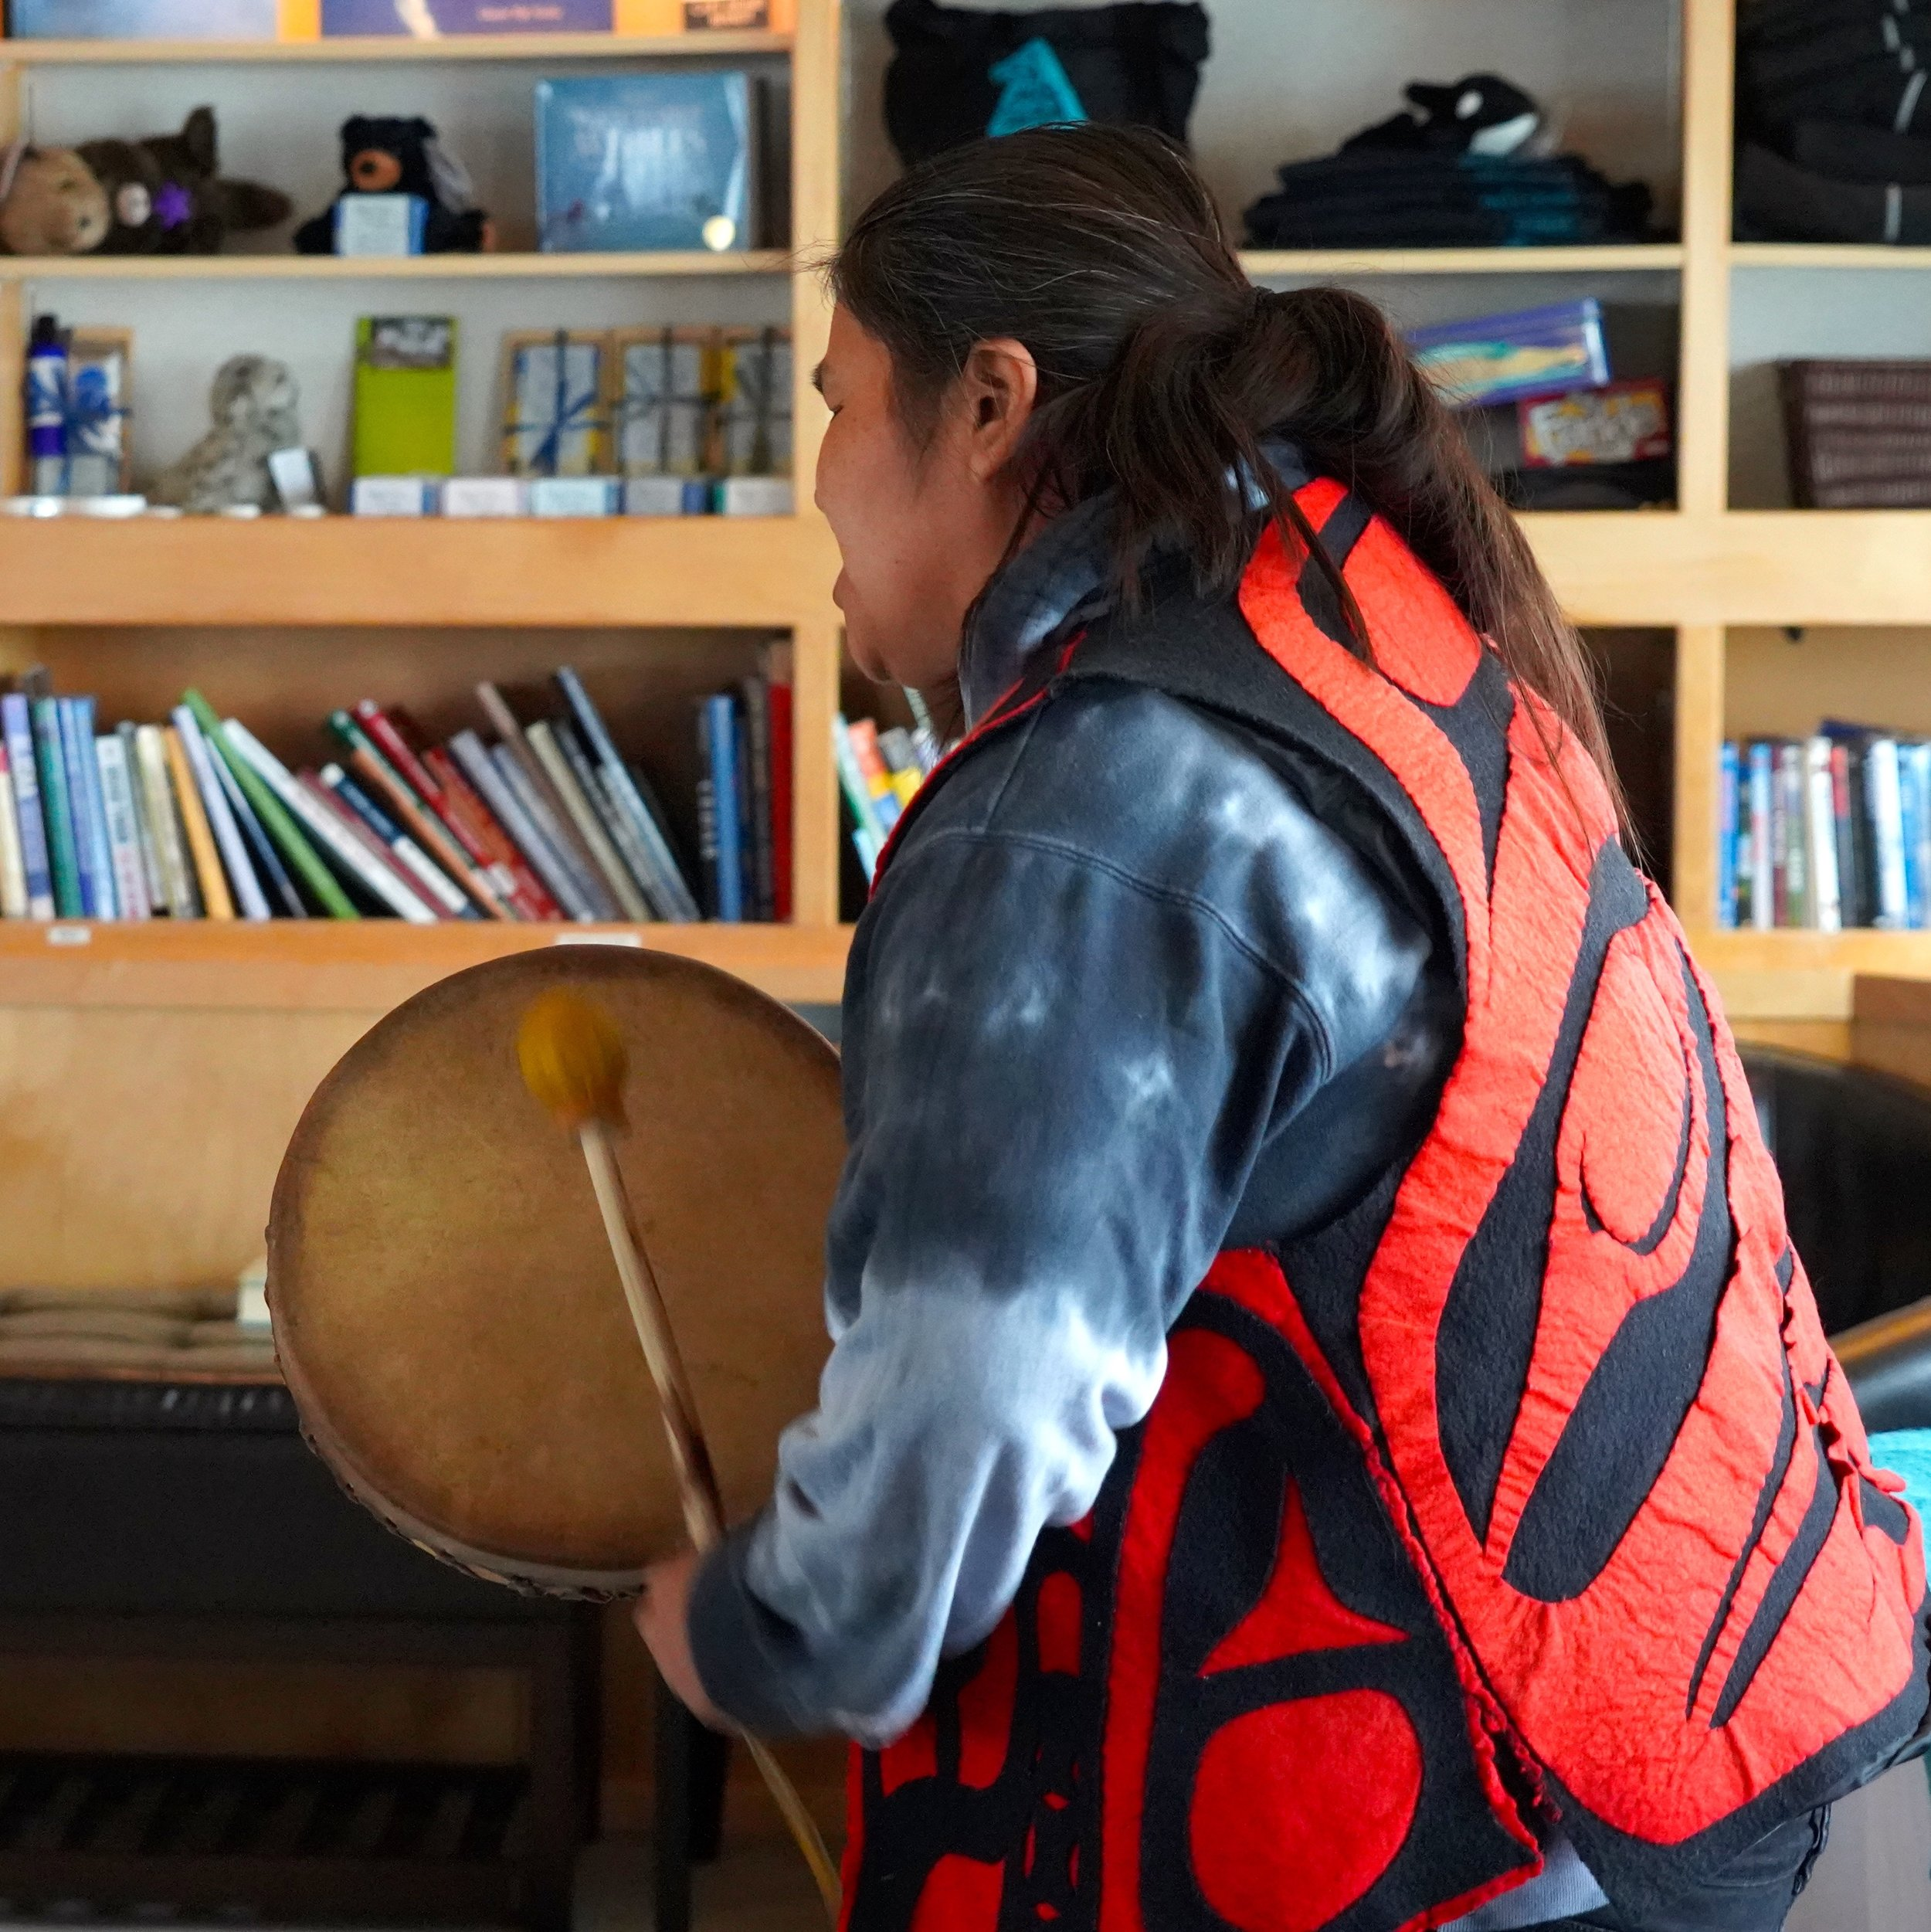 6-29-18 Native guide drumming copy.JPG